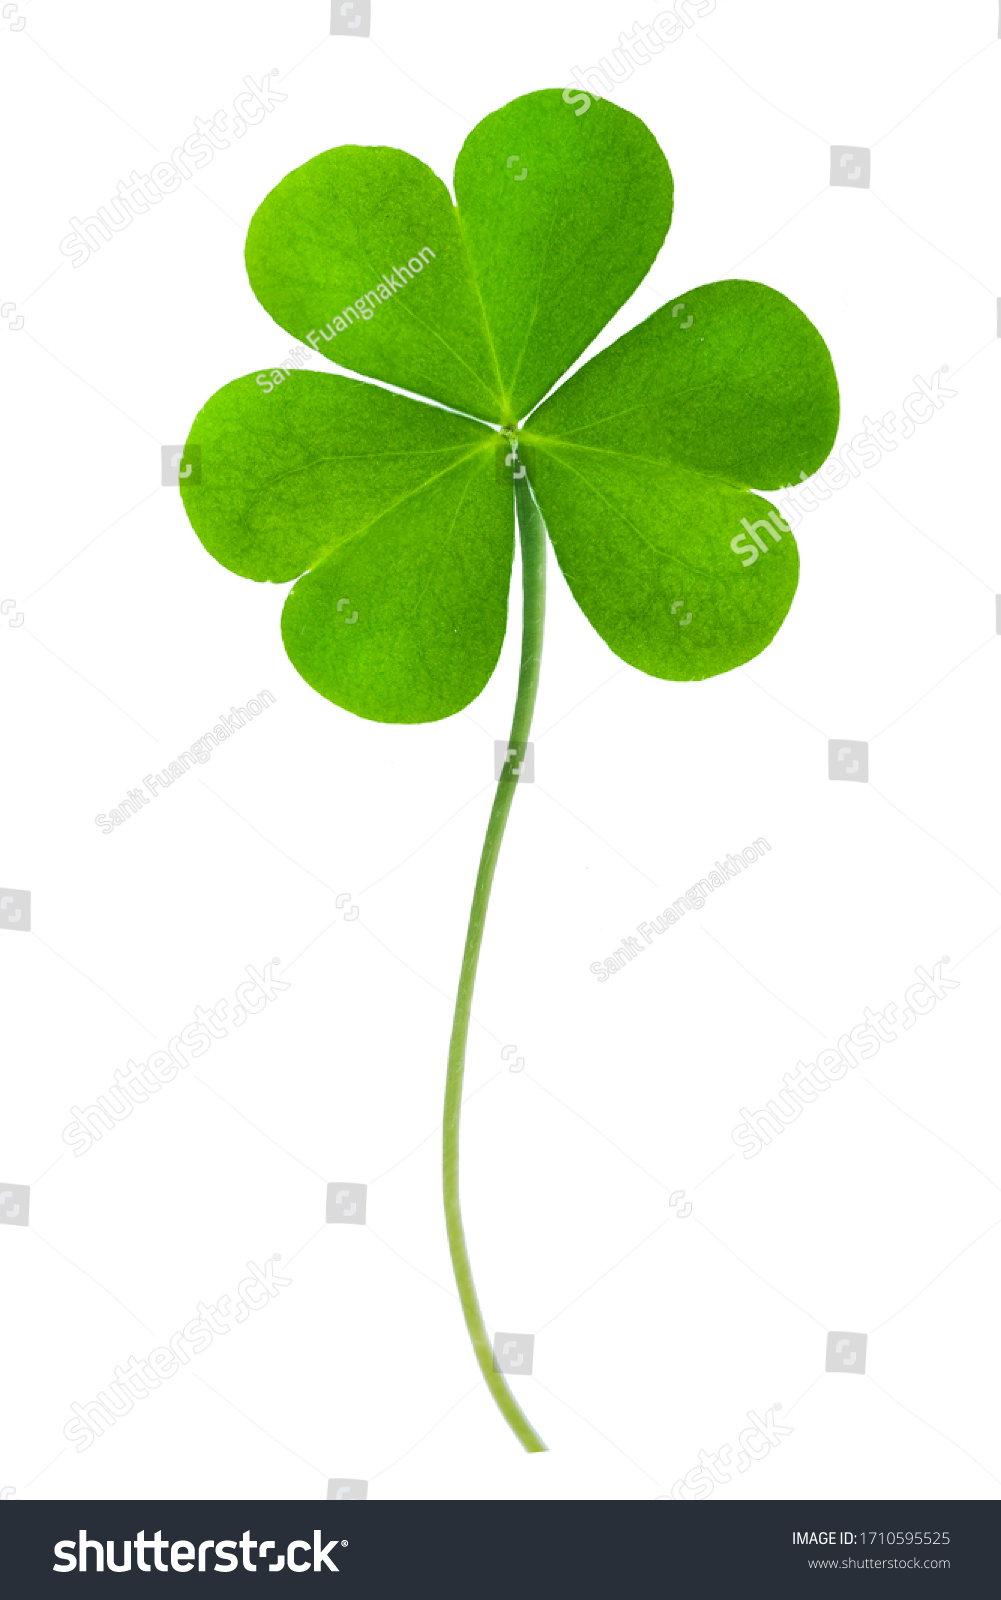 Green clover leaf isolated on white background. This has clipping path. #1710595525